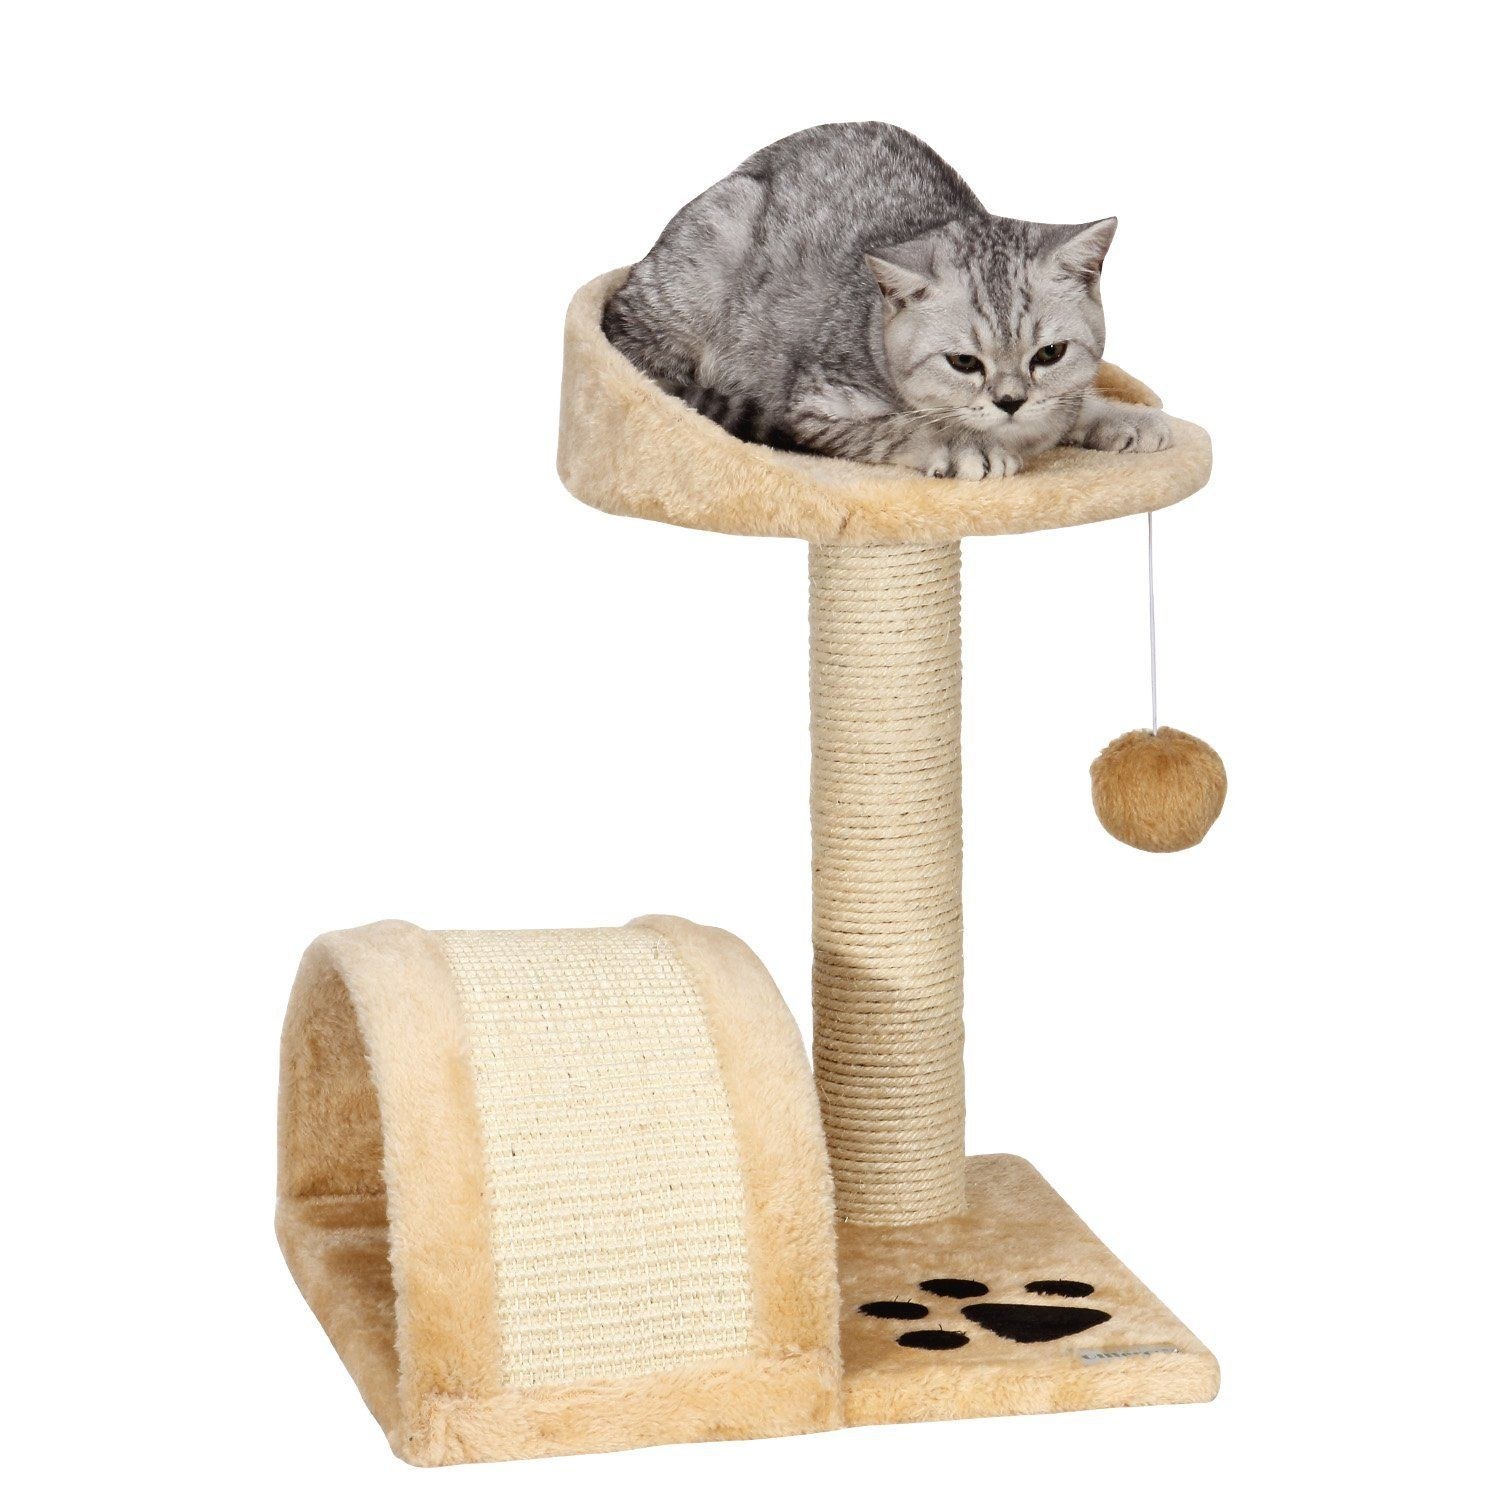 Ollieroo Small Cat Tree Sisal Scratching Post Furniture Playhouse Pet Bed Kitten Toy Cat Tower Condo For Ki Small Cat Tree Cat Tree Scratching Post Kitten Toys